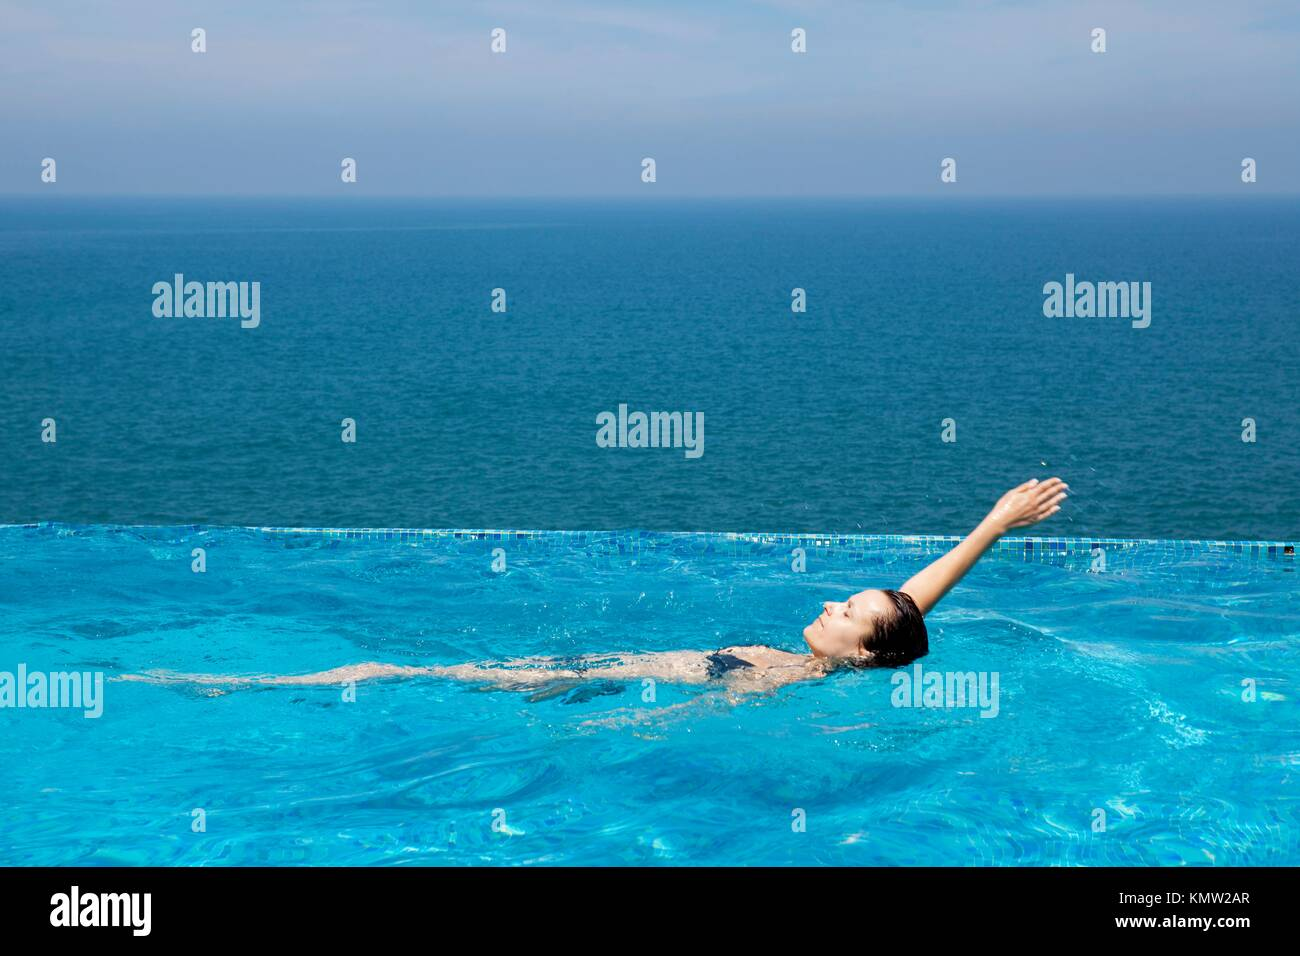 splendid swimming pool in a hotel resort in Kerala state india Stock Photo